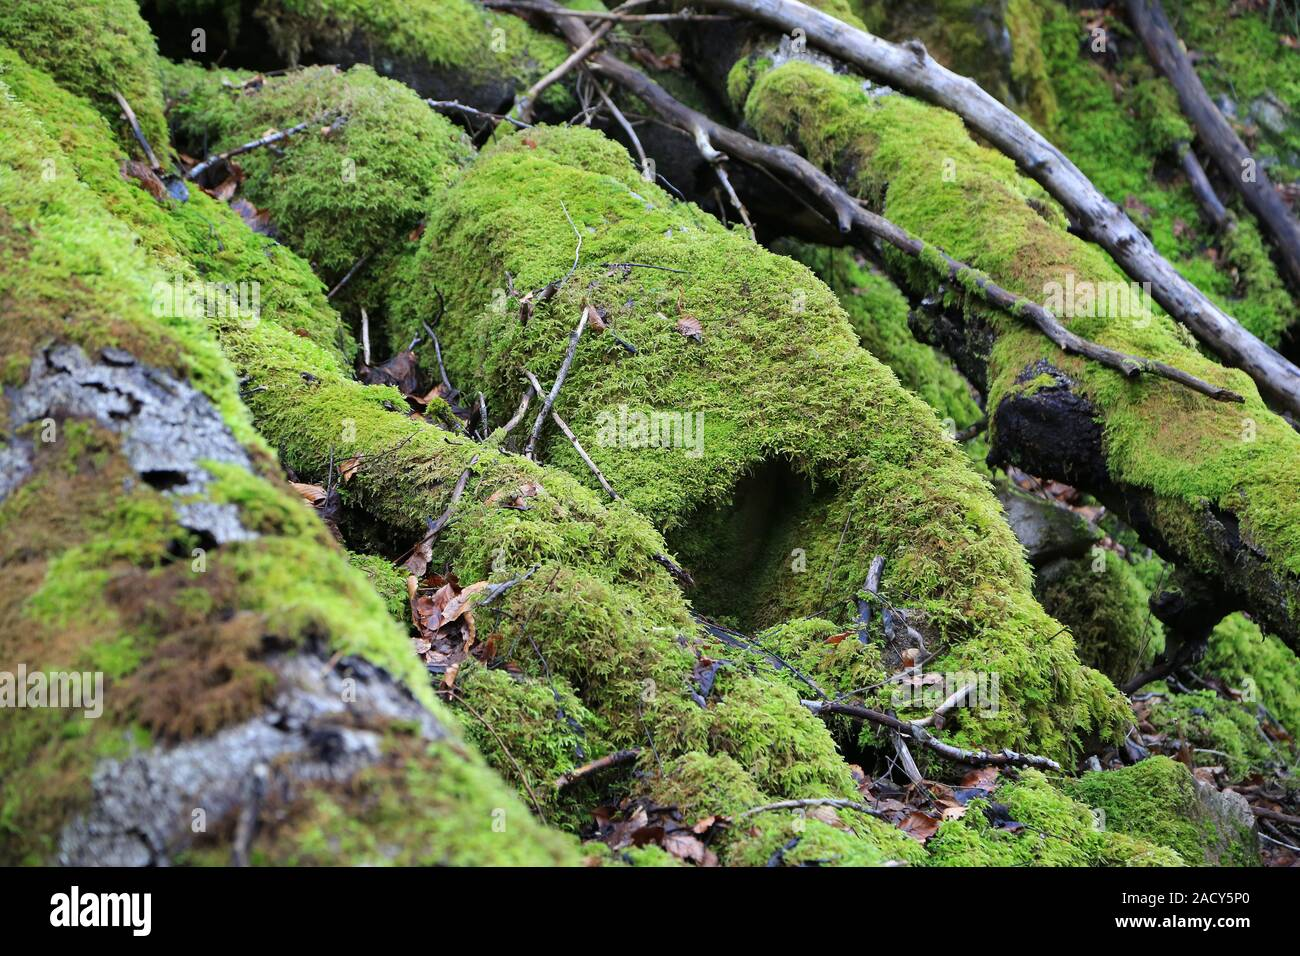 Forest soil with dead wood and moss, sustainability Stock Photo